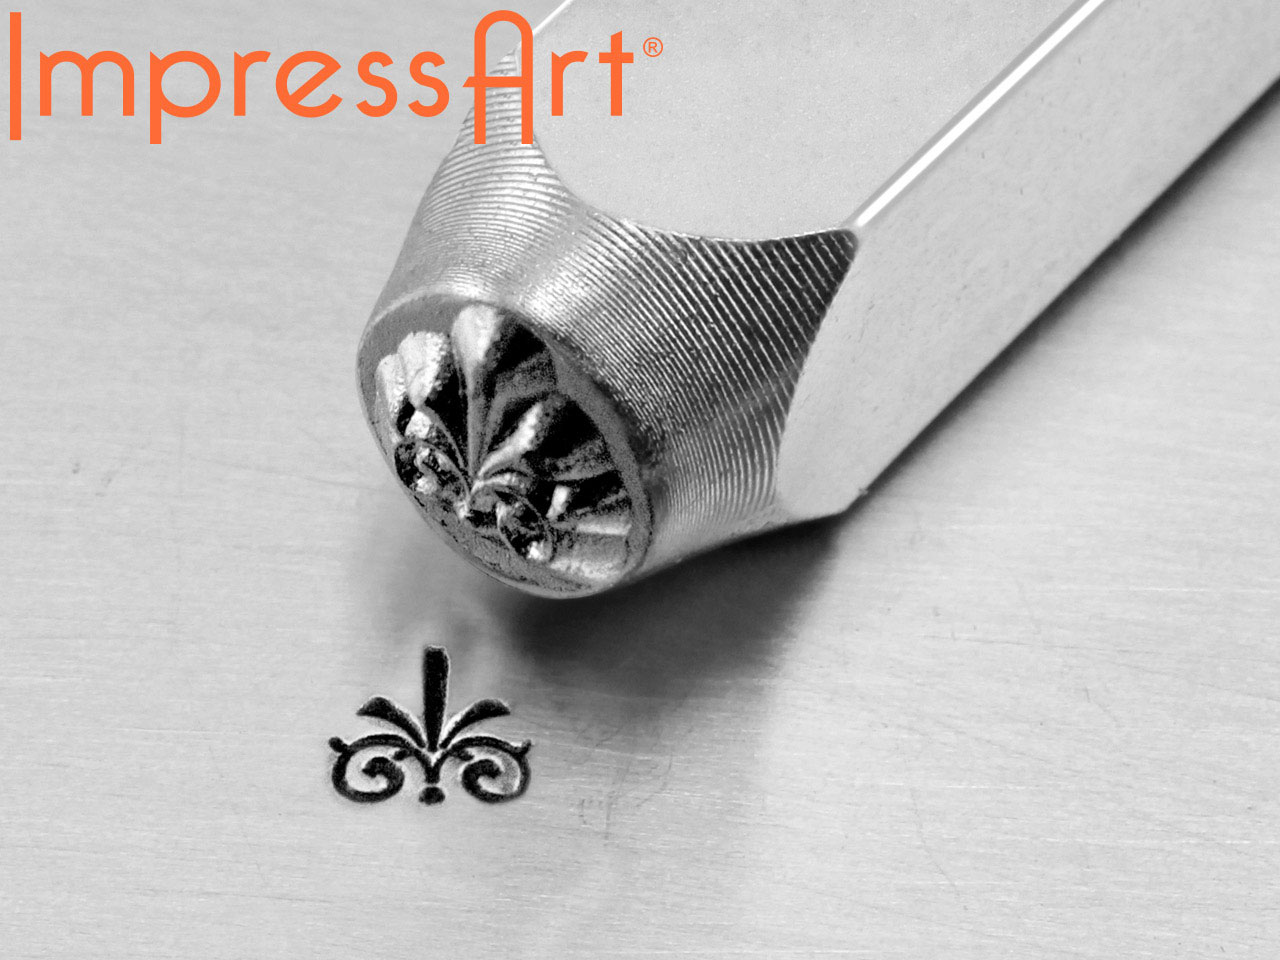 ImpressArt-Border-and-Texture-Design-Metal-Stamping-Metal-Stamps-3mm-6mm thumbnail 8